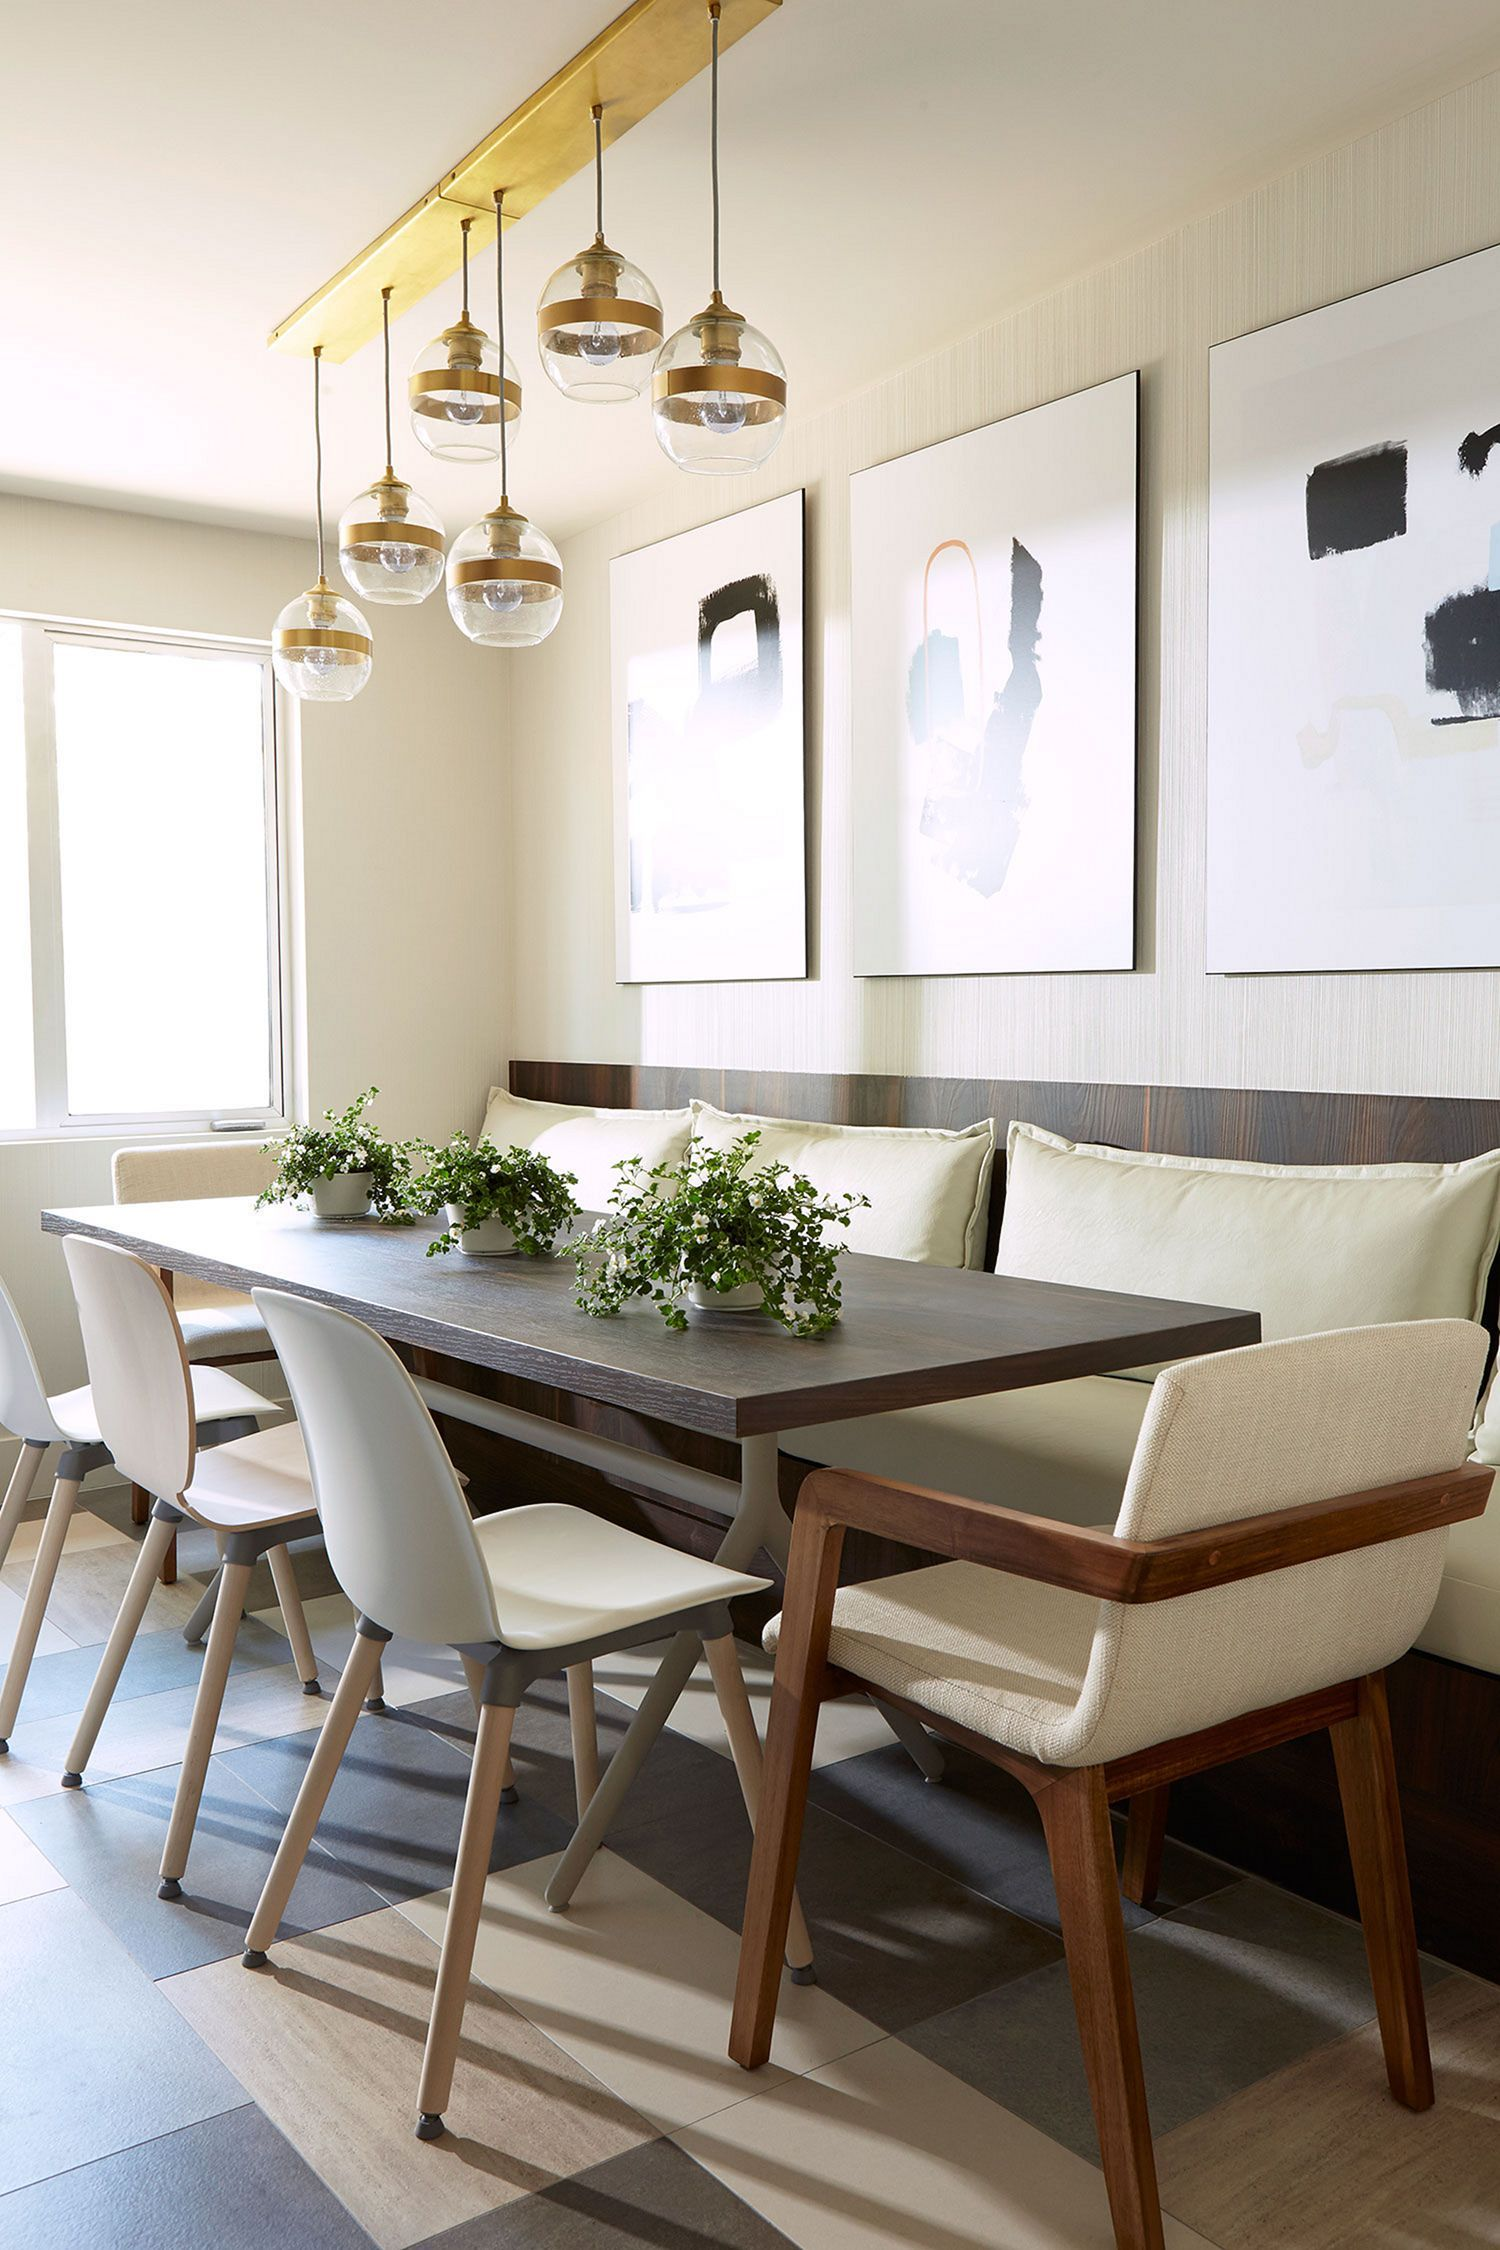 Breathtaking 50 Awesome Rustic Dining Room Lighting Ideas Https